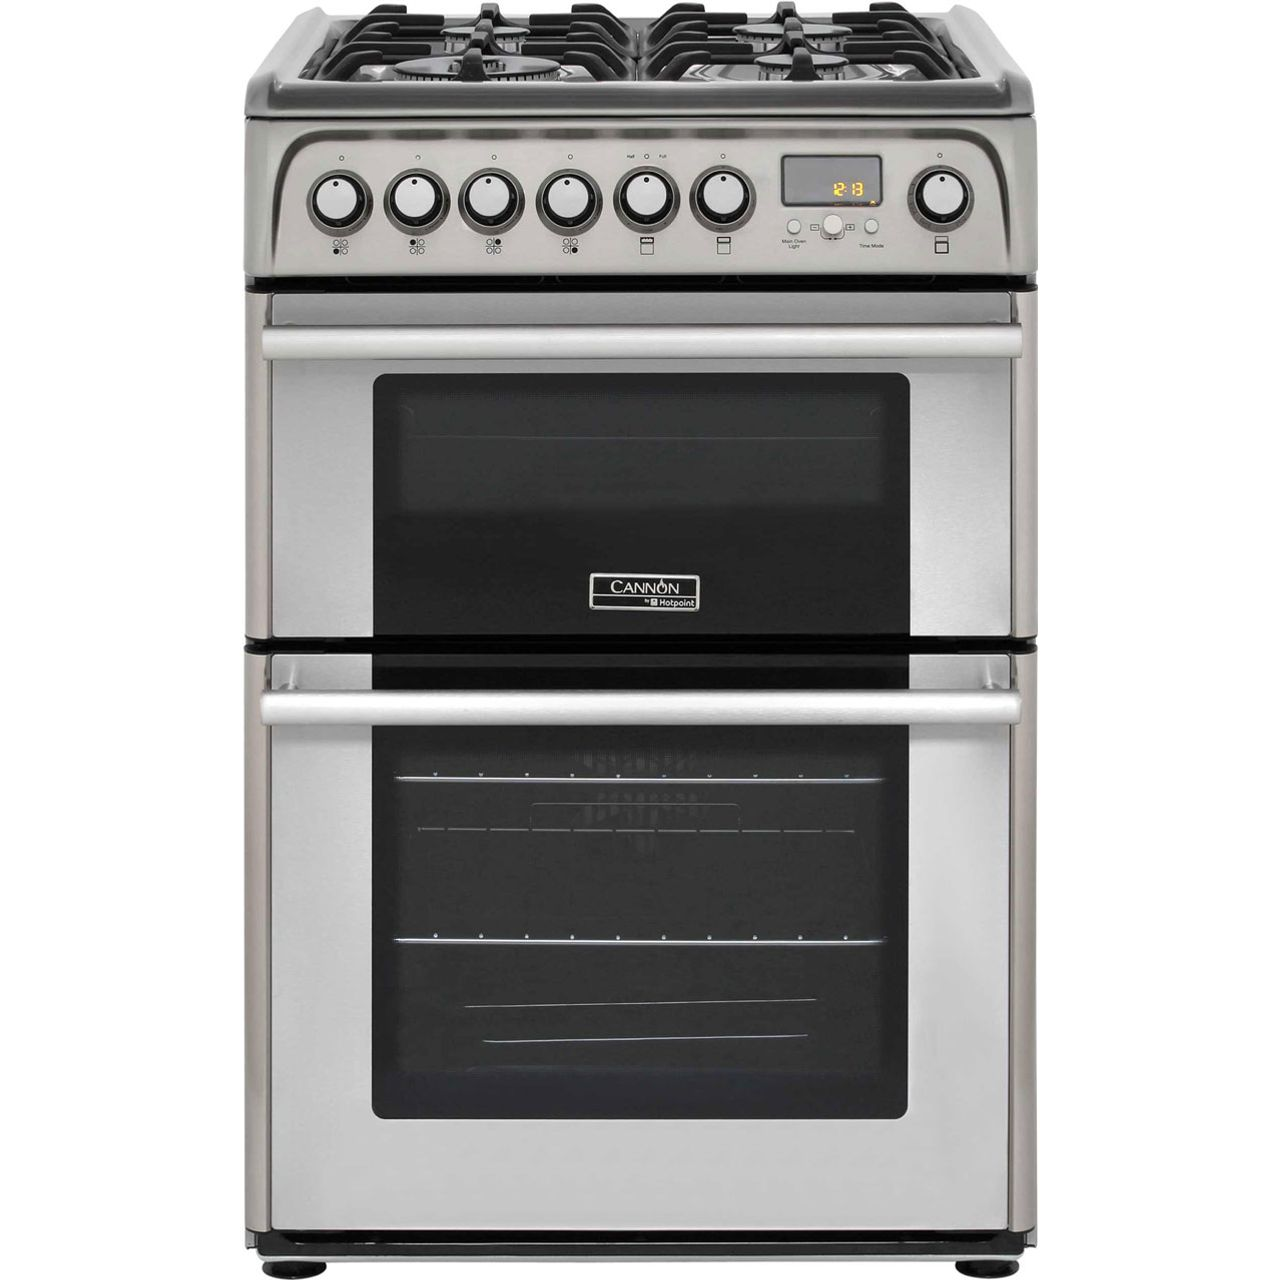 Cannon by Hotpoint CH60DPXFS Free Standing Cooker in Stainless Steel